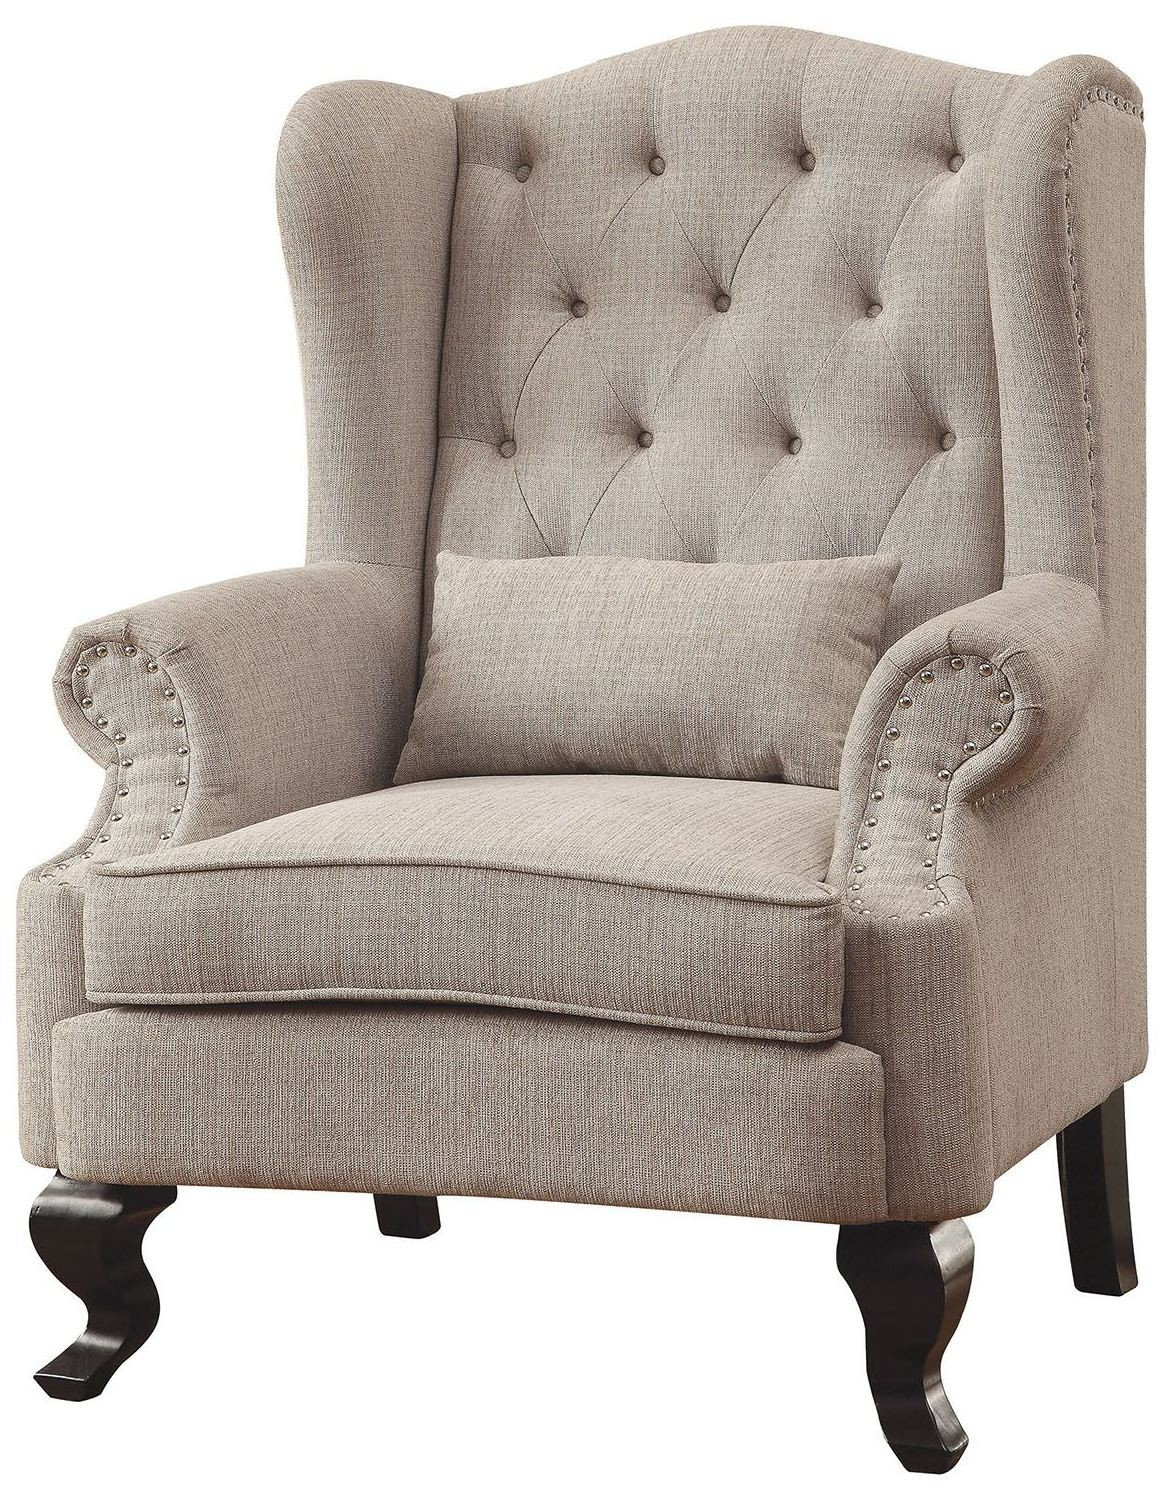 cheap accent chairs for sale children s upholstered rocking chair willow beige from furniture of america